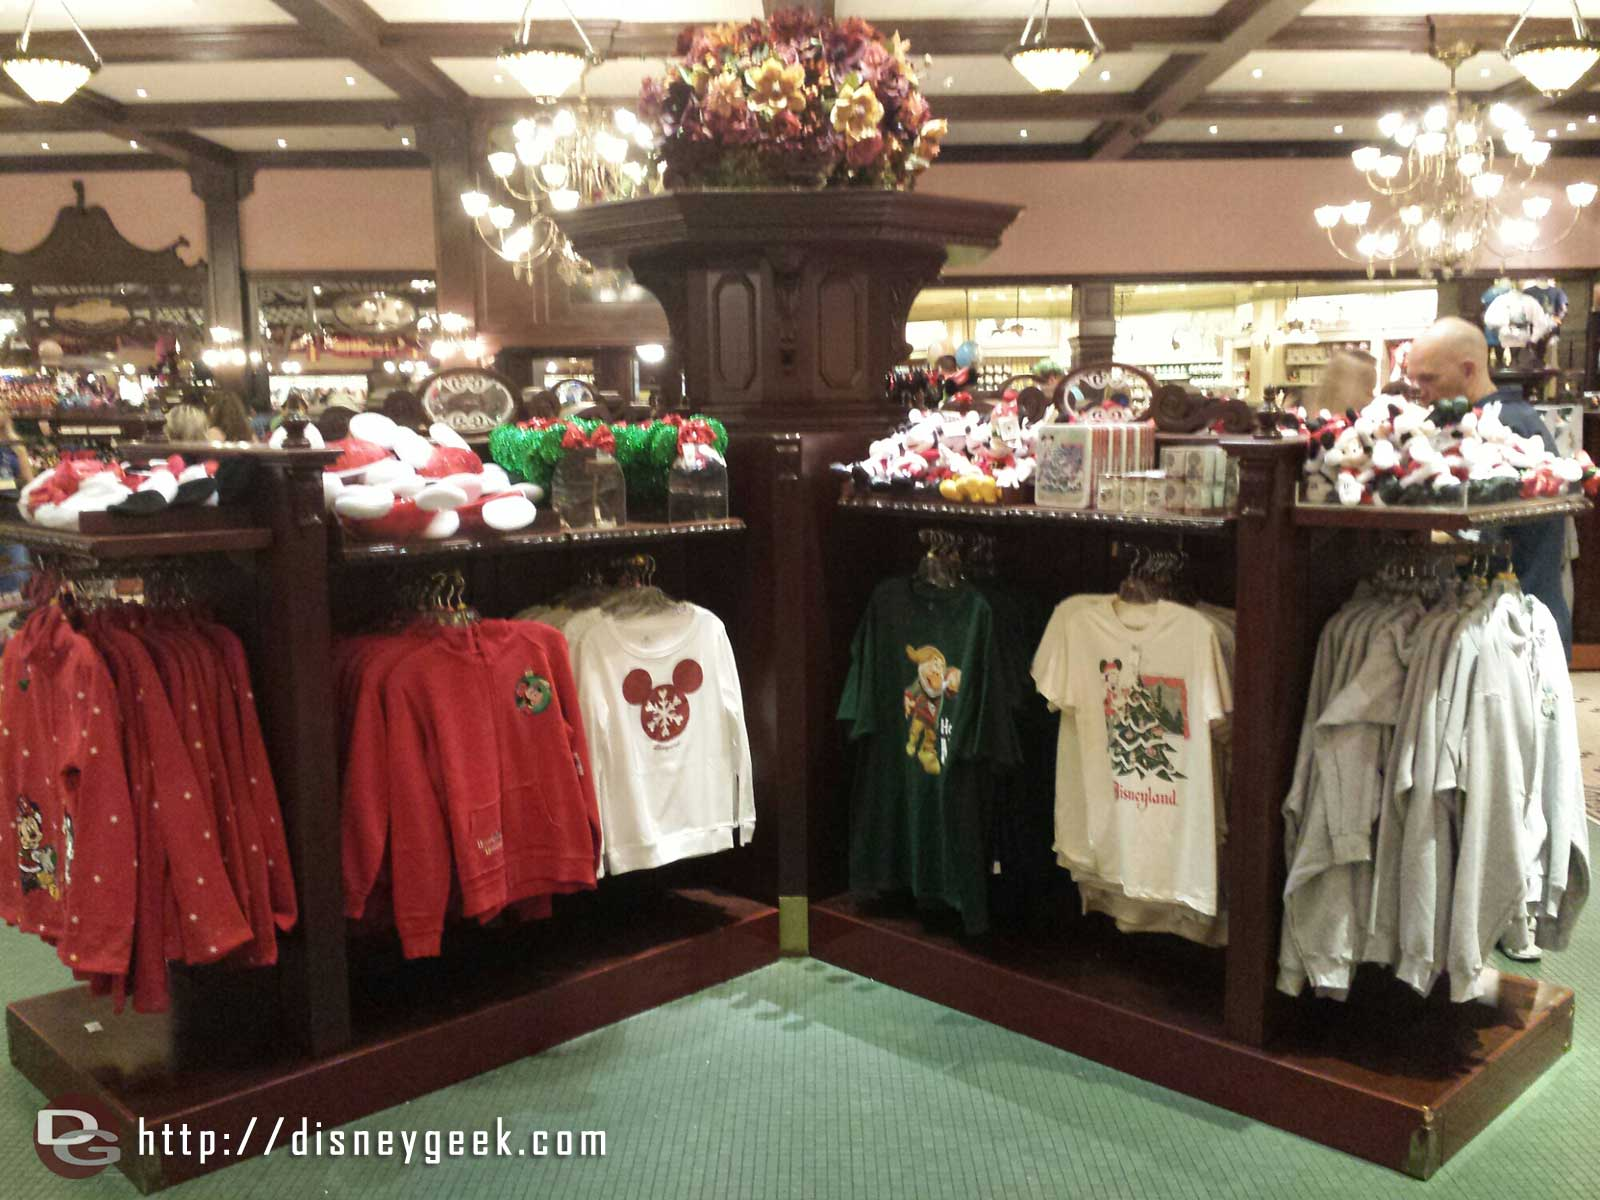 The Emporium features Christmas merchandise in the center of the store #Disneyland